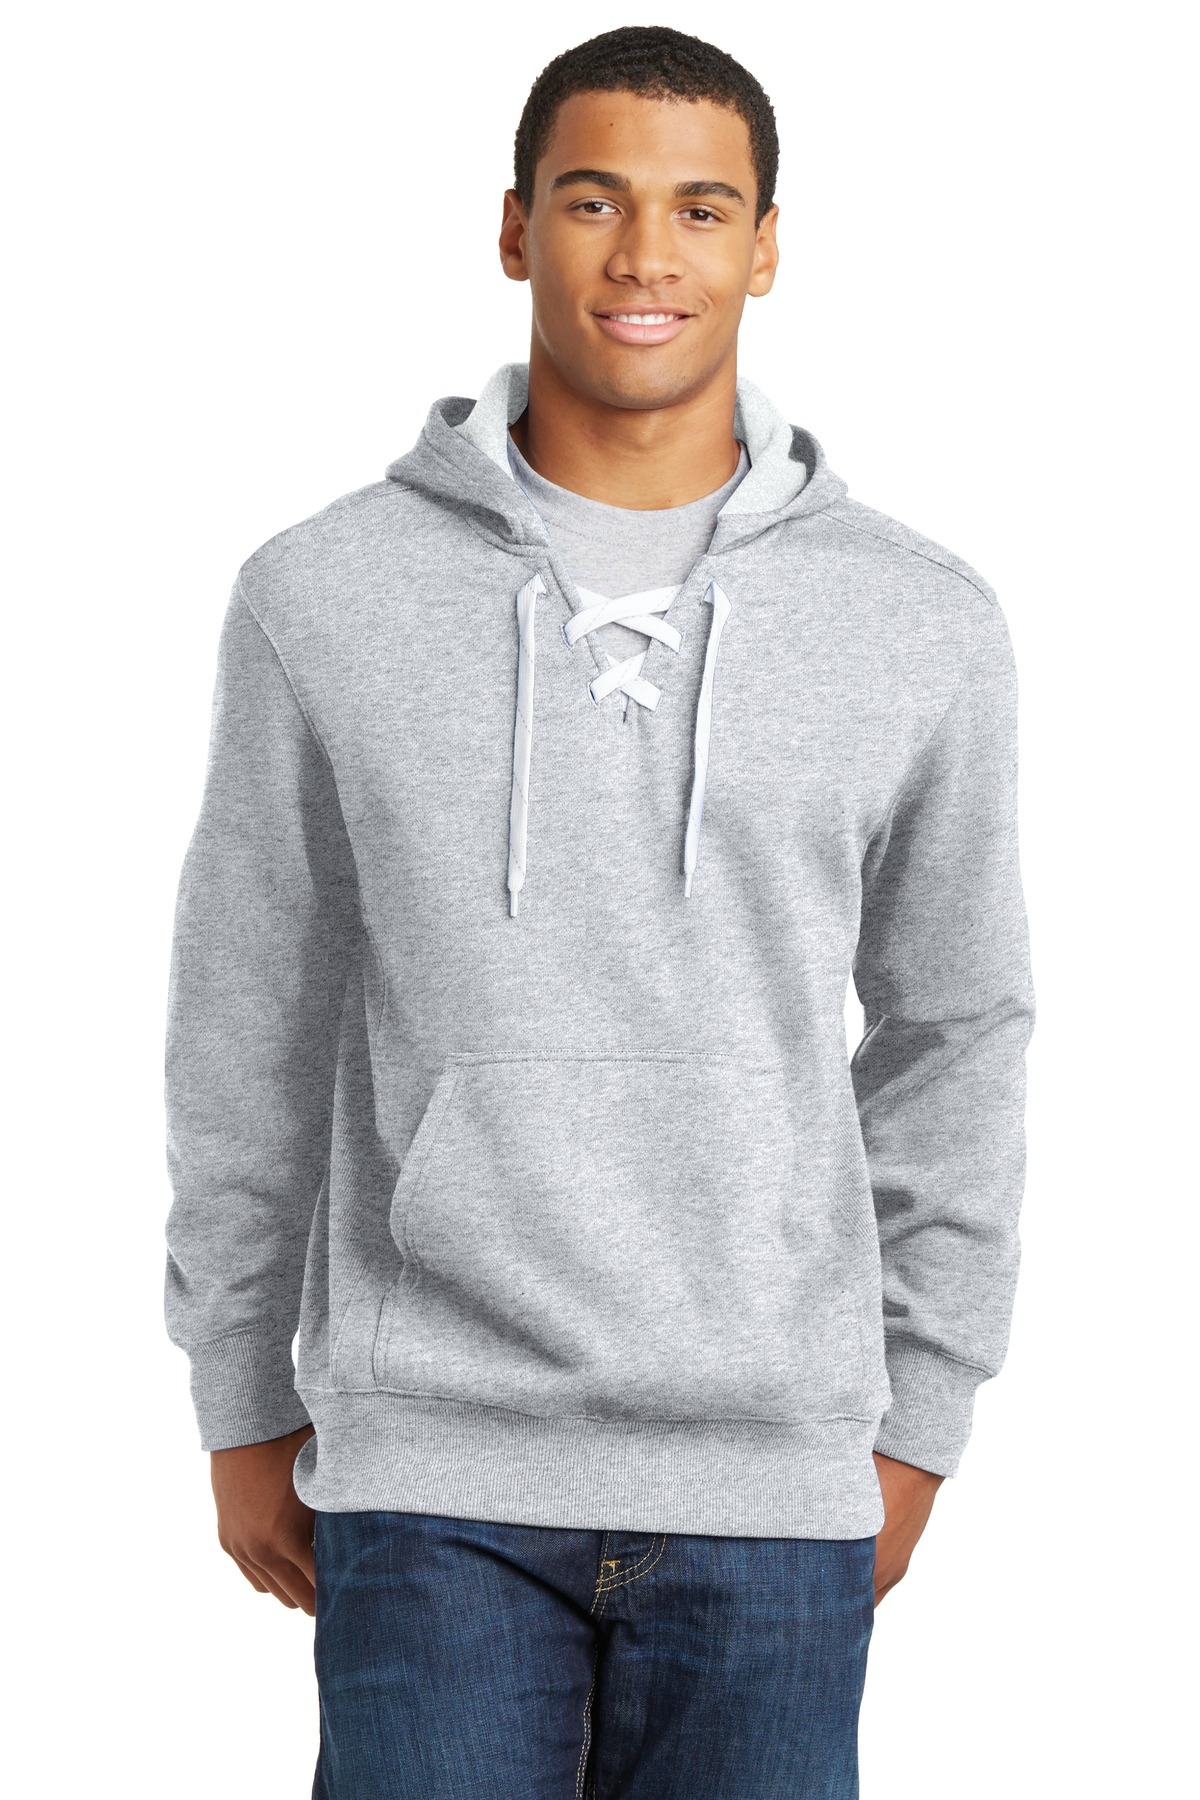 Sport-Tek® ST271 - Lace Up Pullover Hooded Sweatshirt - Men s Fleece 11fe843e1